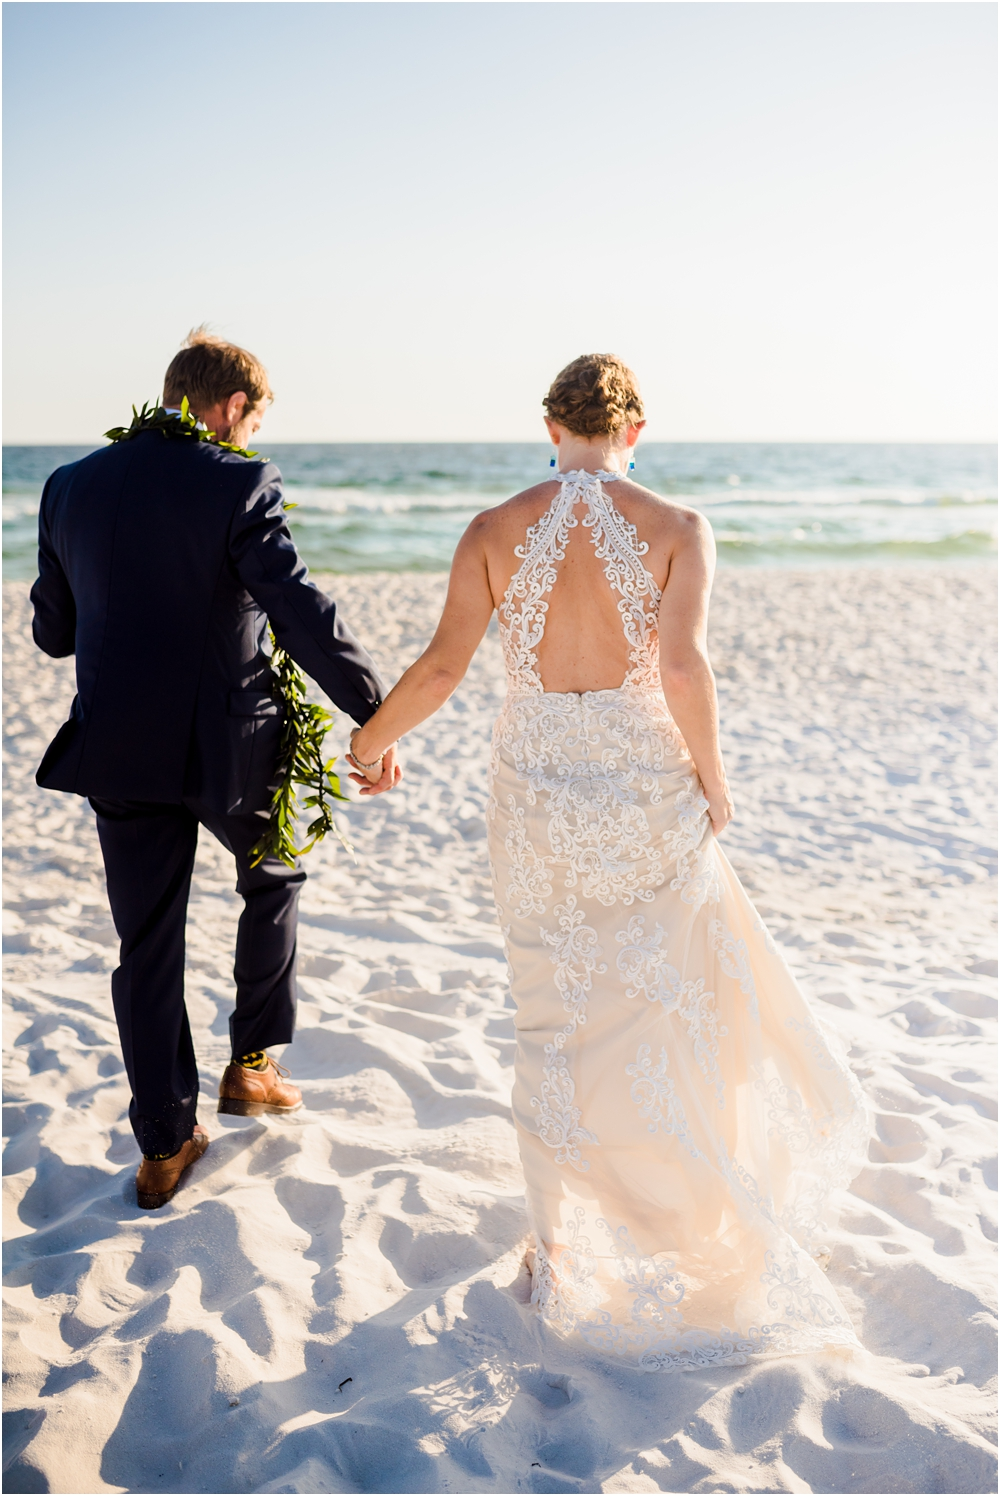 ledman-wedding-kiersten-stevenson-photography-30a-panama-city-beach-dothan-tallahassee-(263-of-763).JPG